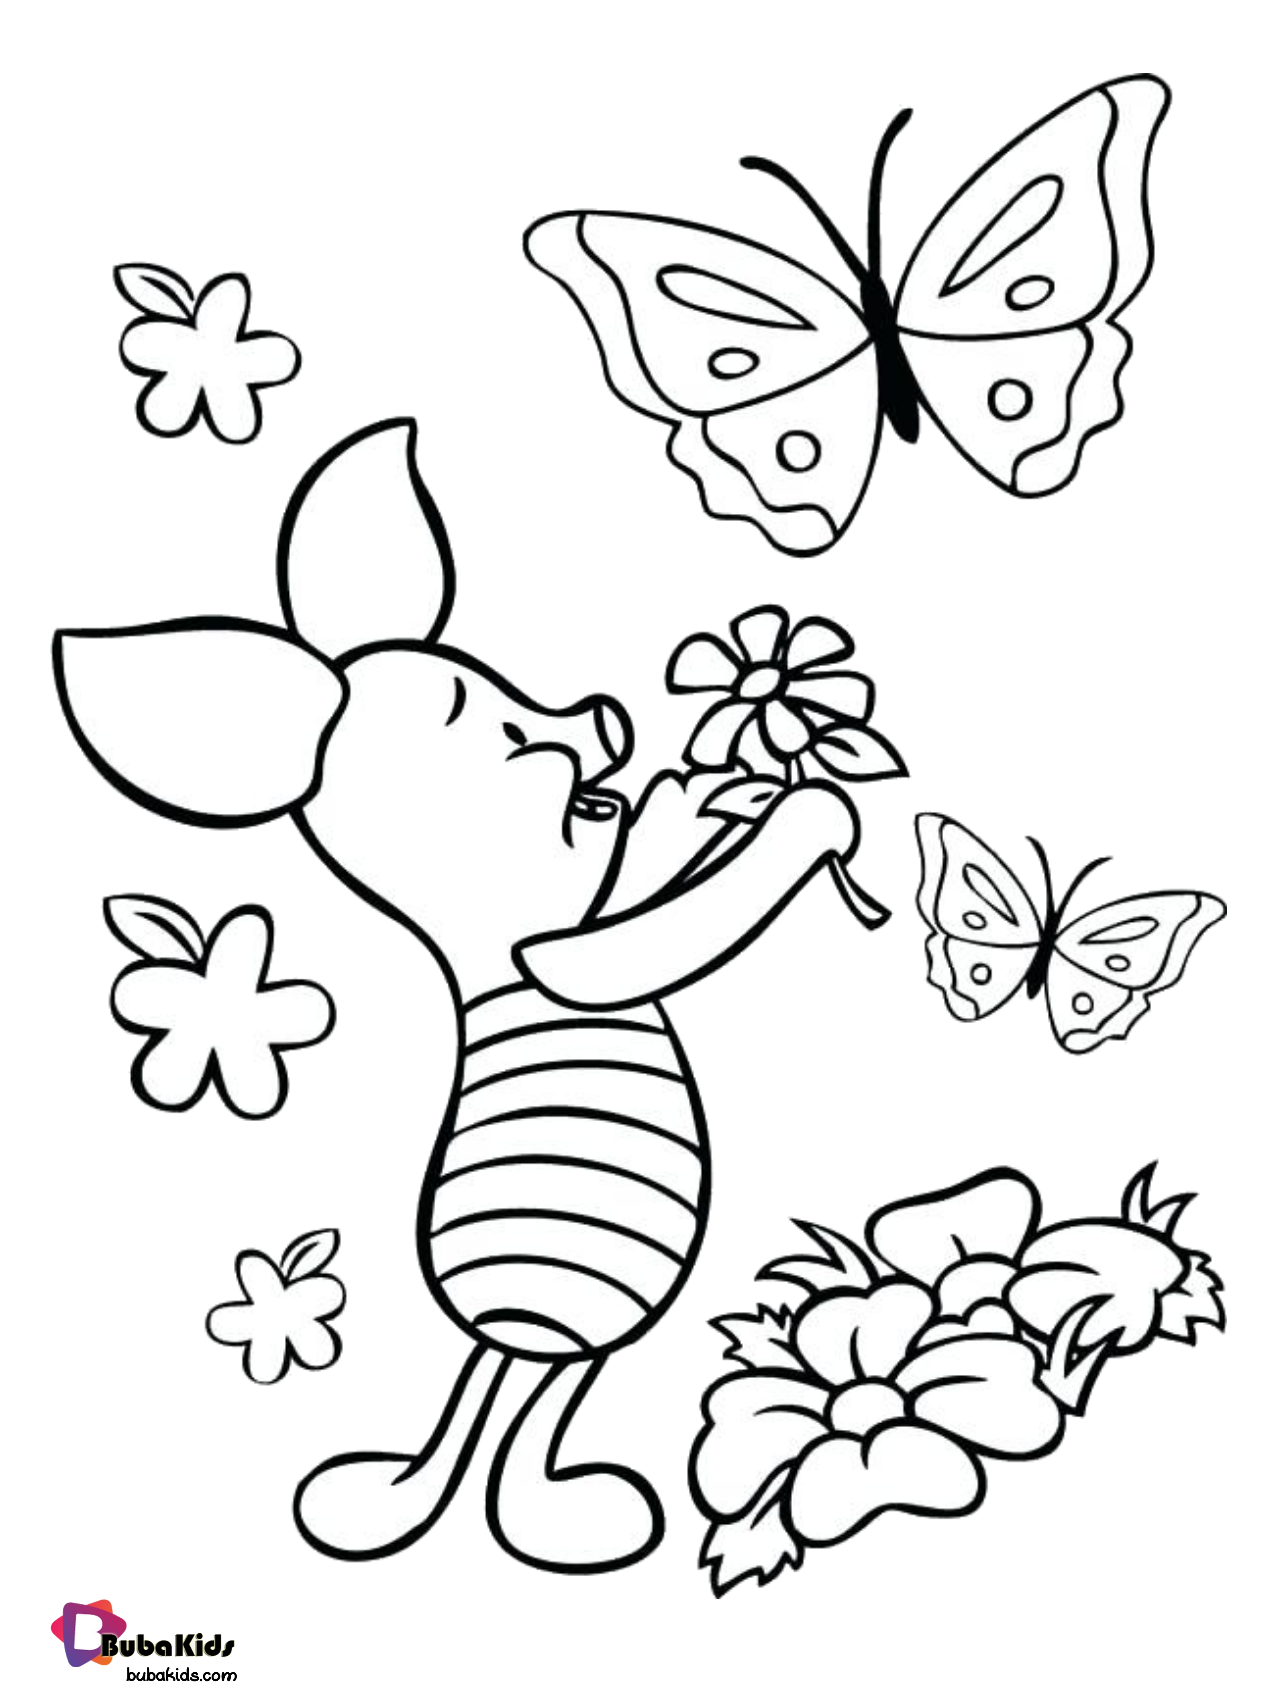 Piglet And Butterflies Printable Coloring Page Collection Of Cartoon Coloring Pages For Teenage Butterfly Coloring Page Flower Coloring Pages Coloring Pages [ 1703 x 1277 Pixel ]